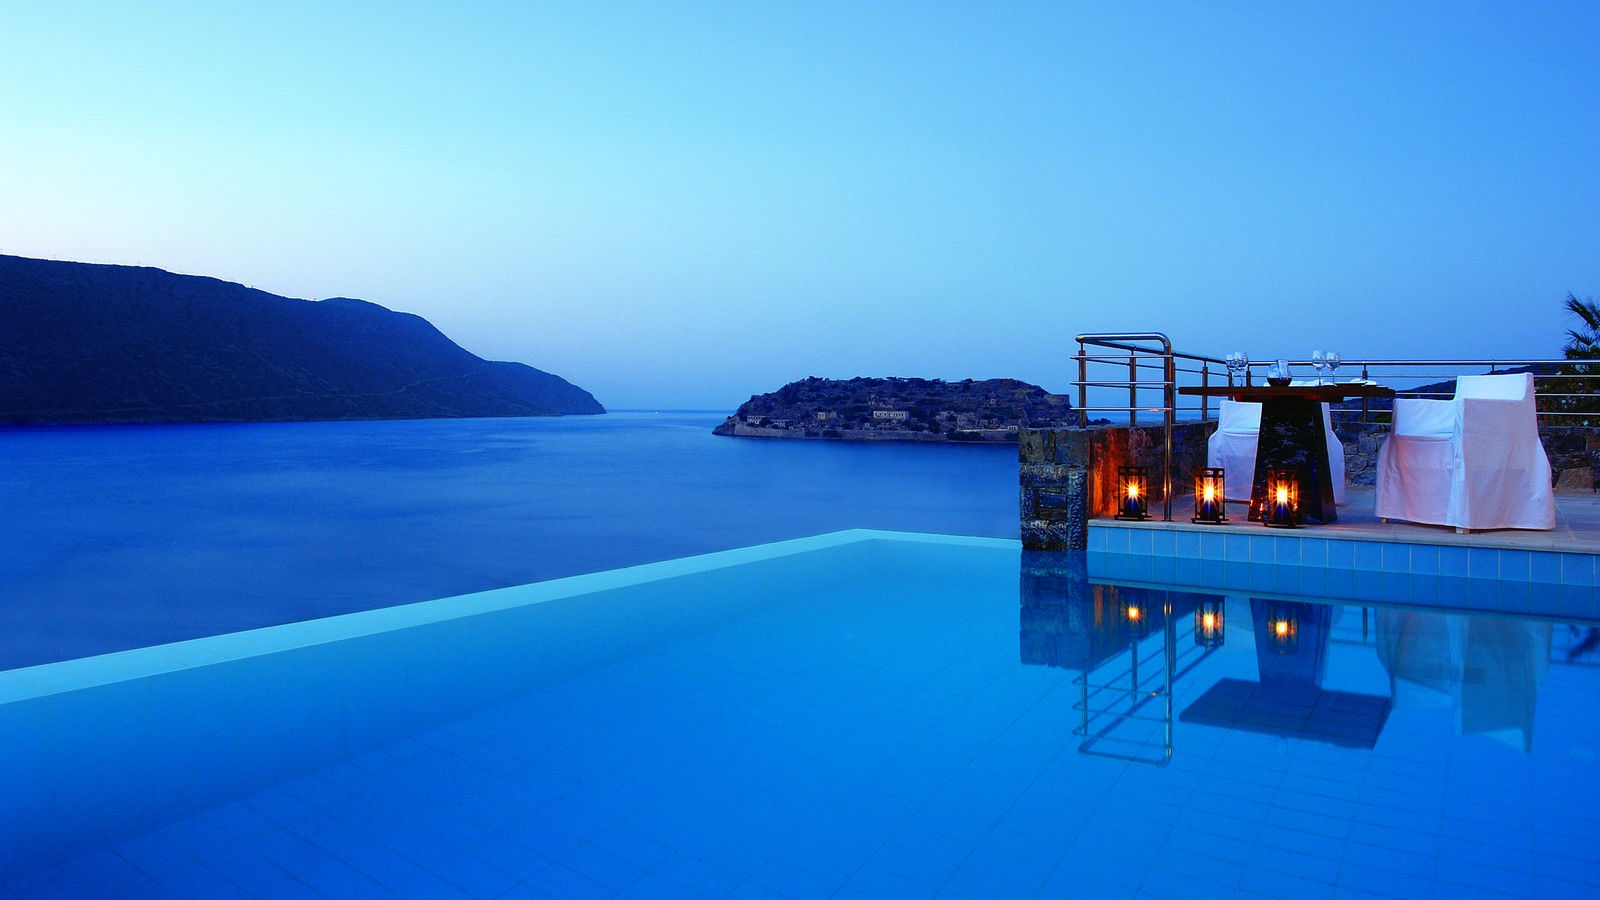 Resort Activities at Blue Palace Resort, Elounda, Crete